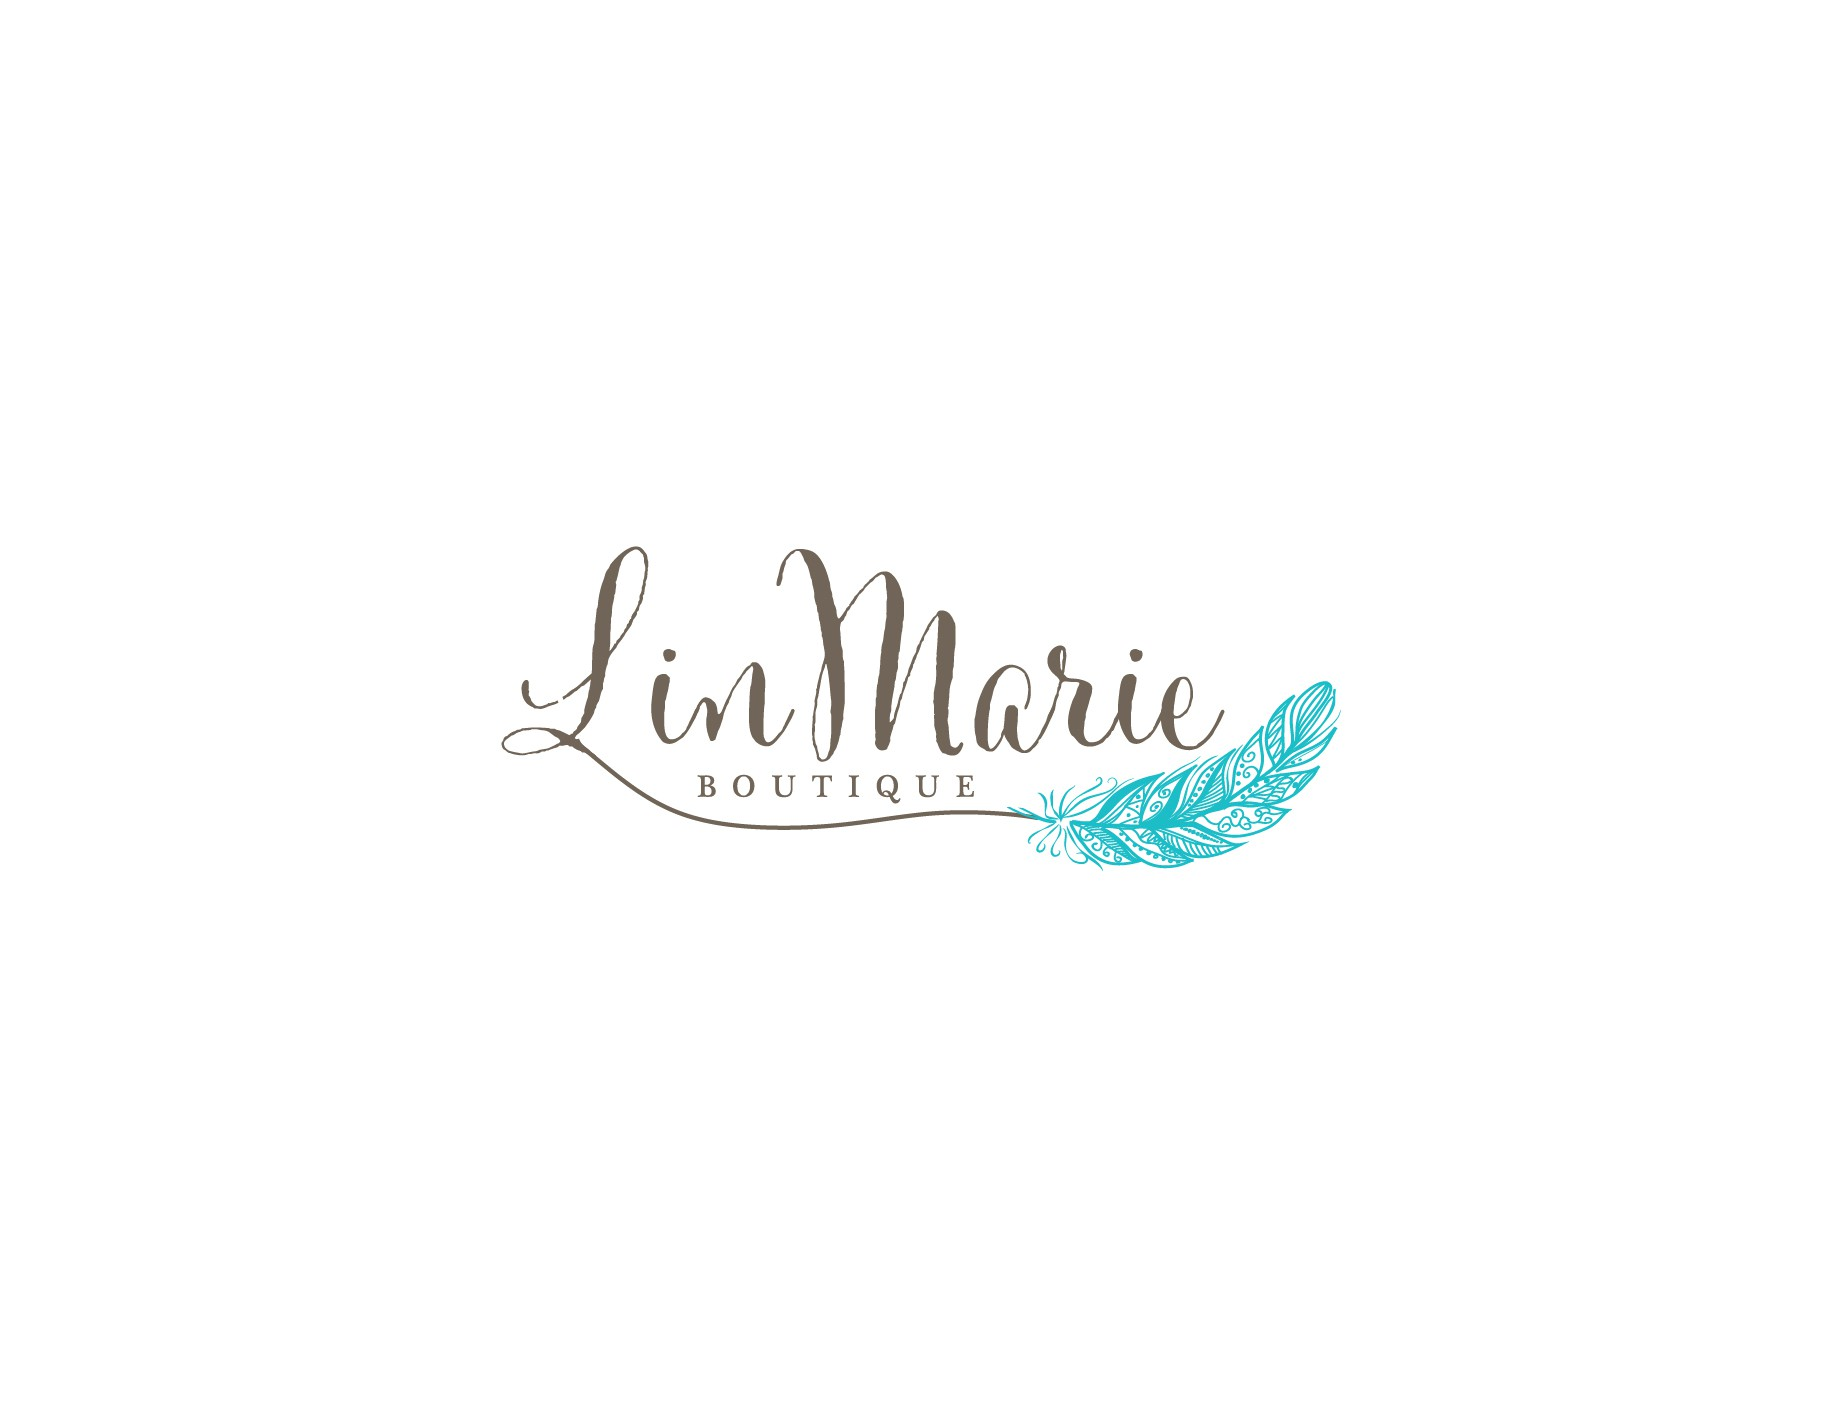 I would love a type of feather included in my logo